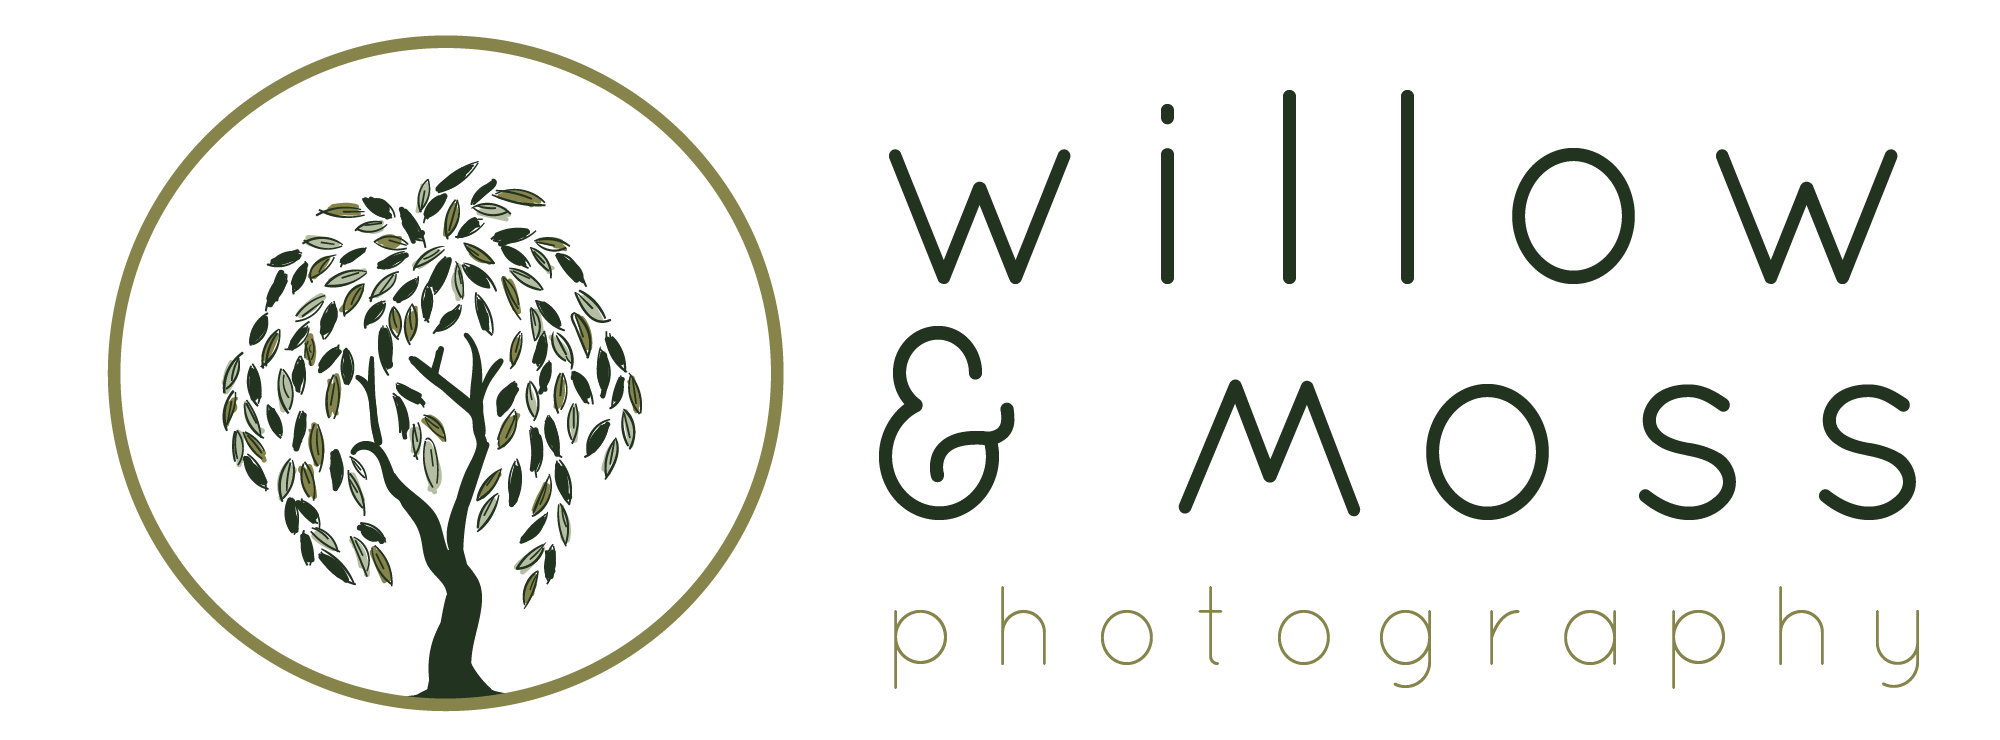 Willow & Moss Photography